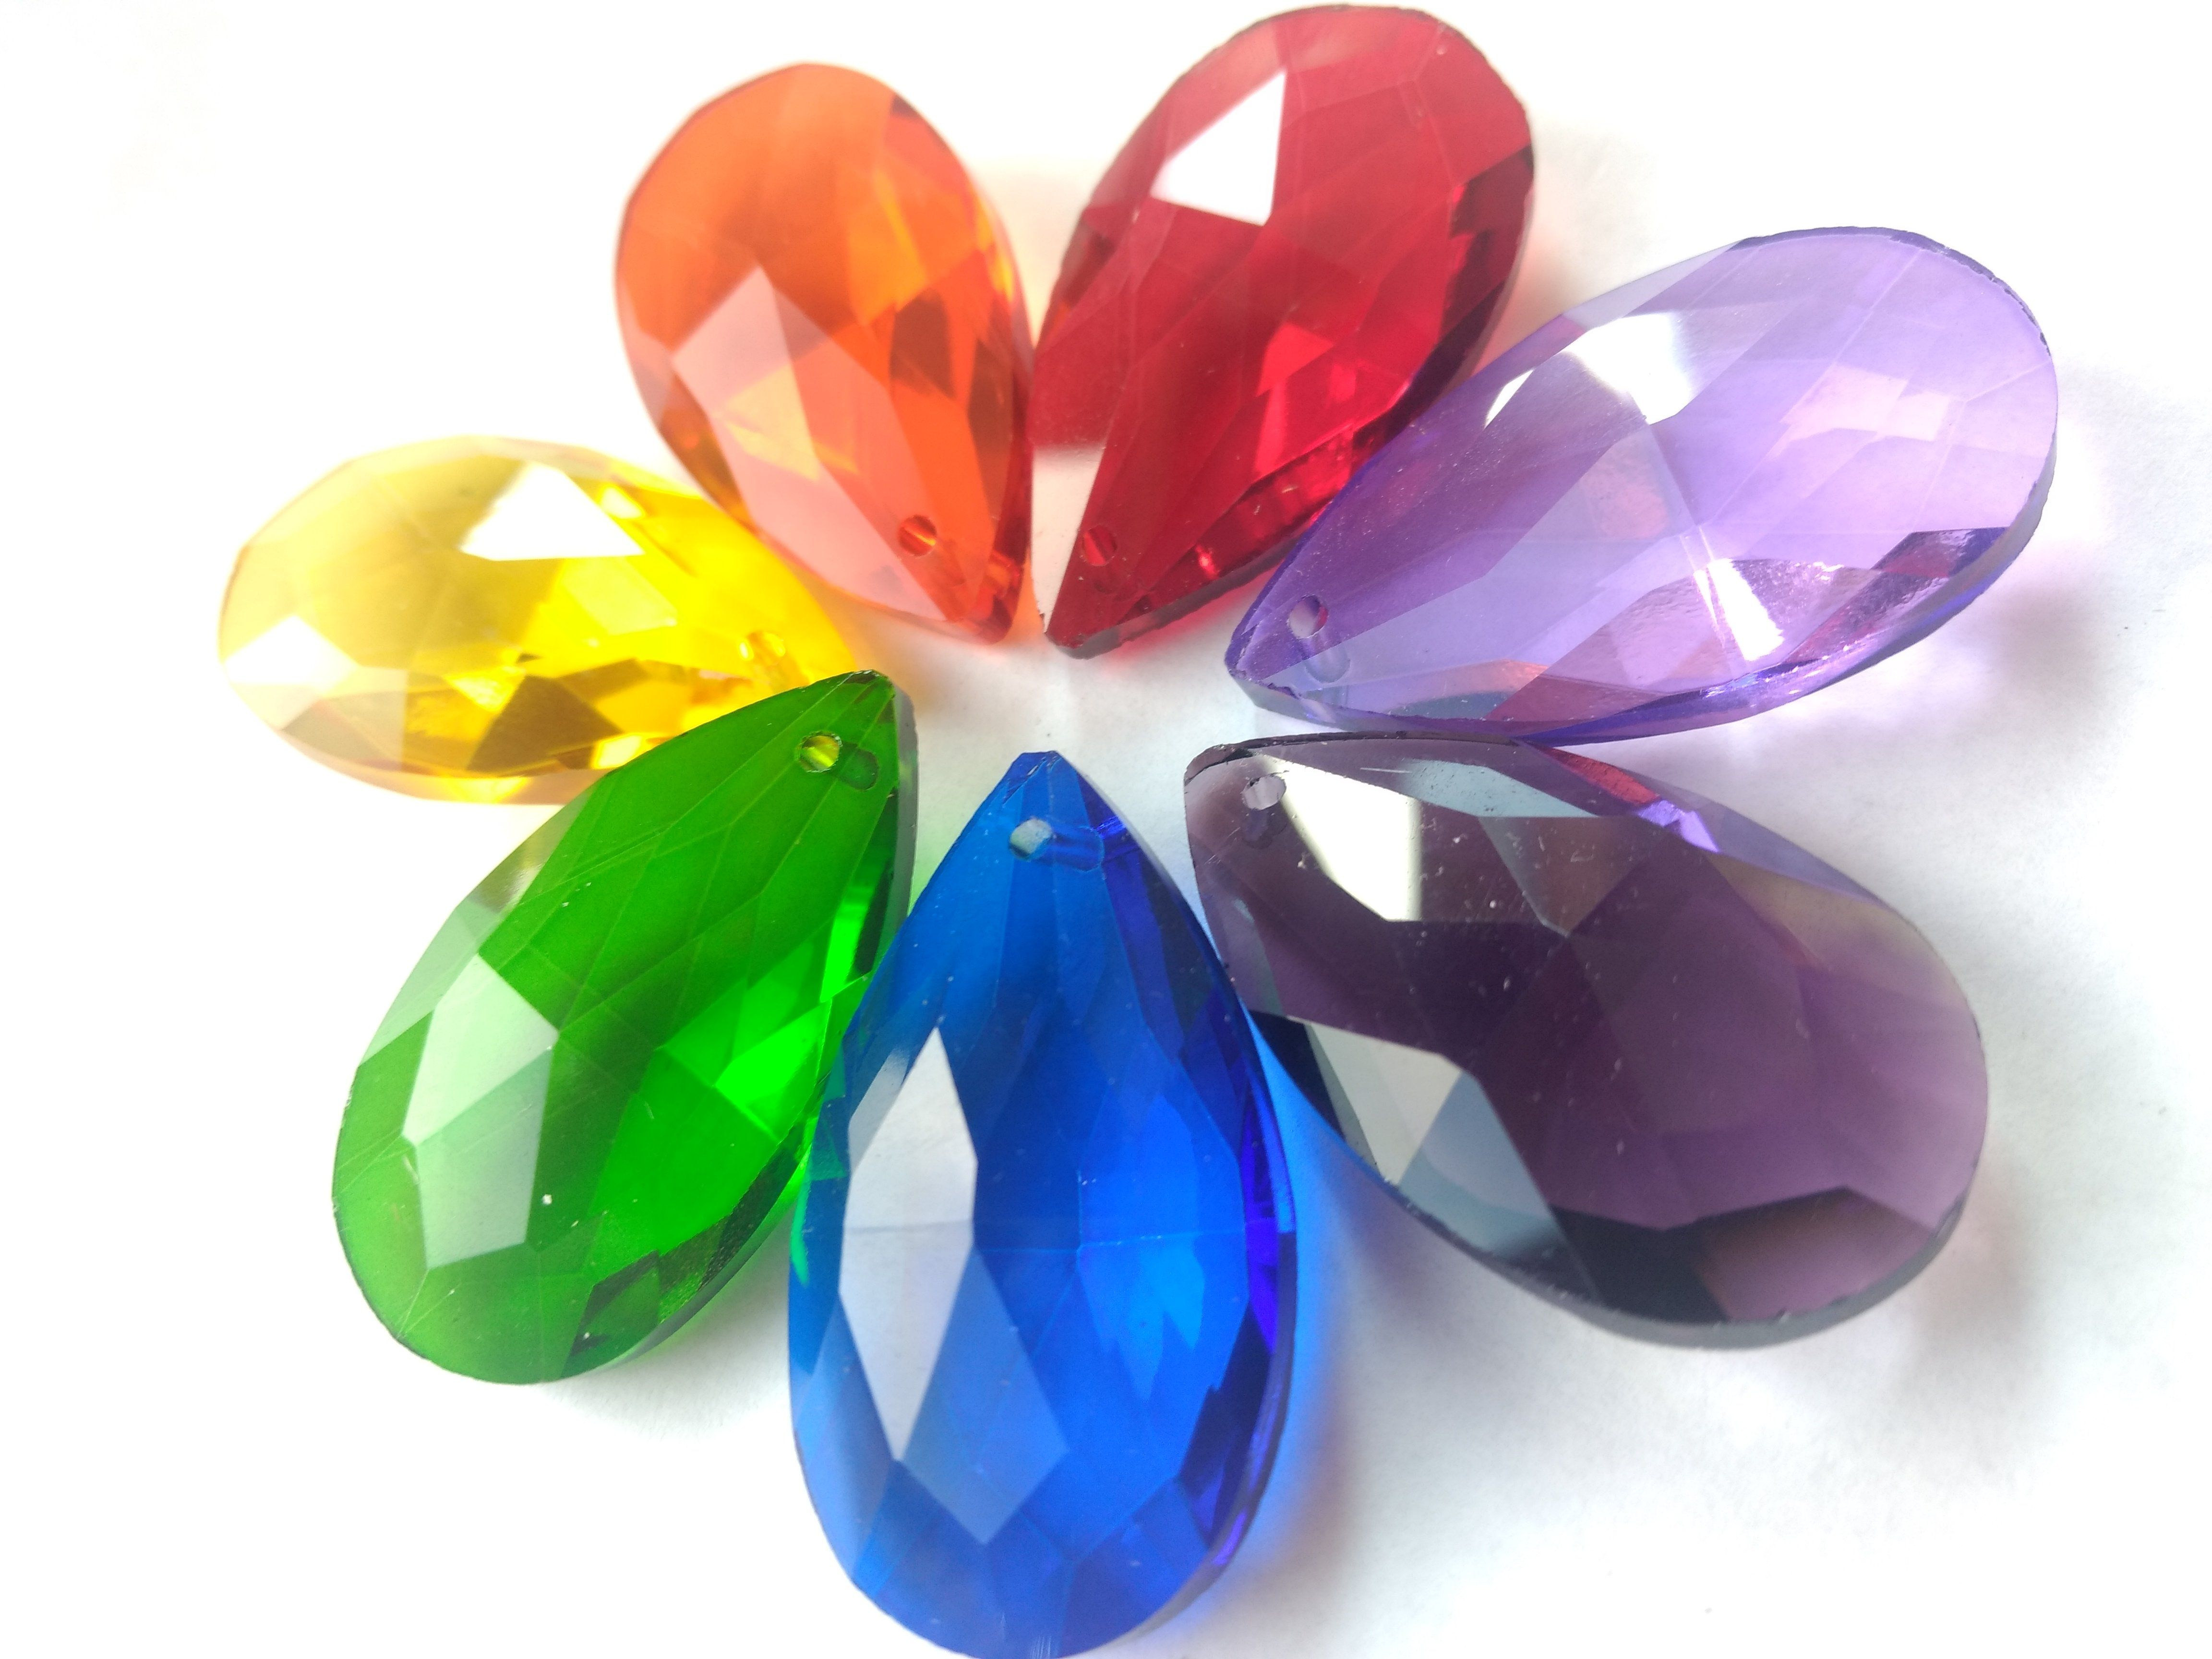 Set of 7 rainbow assortment color teardrop chandelier crystals 38mm set of 7 rainbow assortment color teardrop chandelier crystals 38mm arubaitofo Image collections